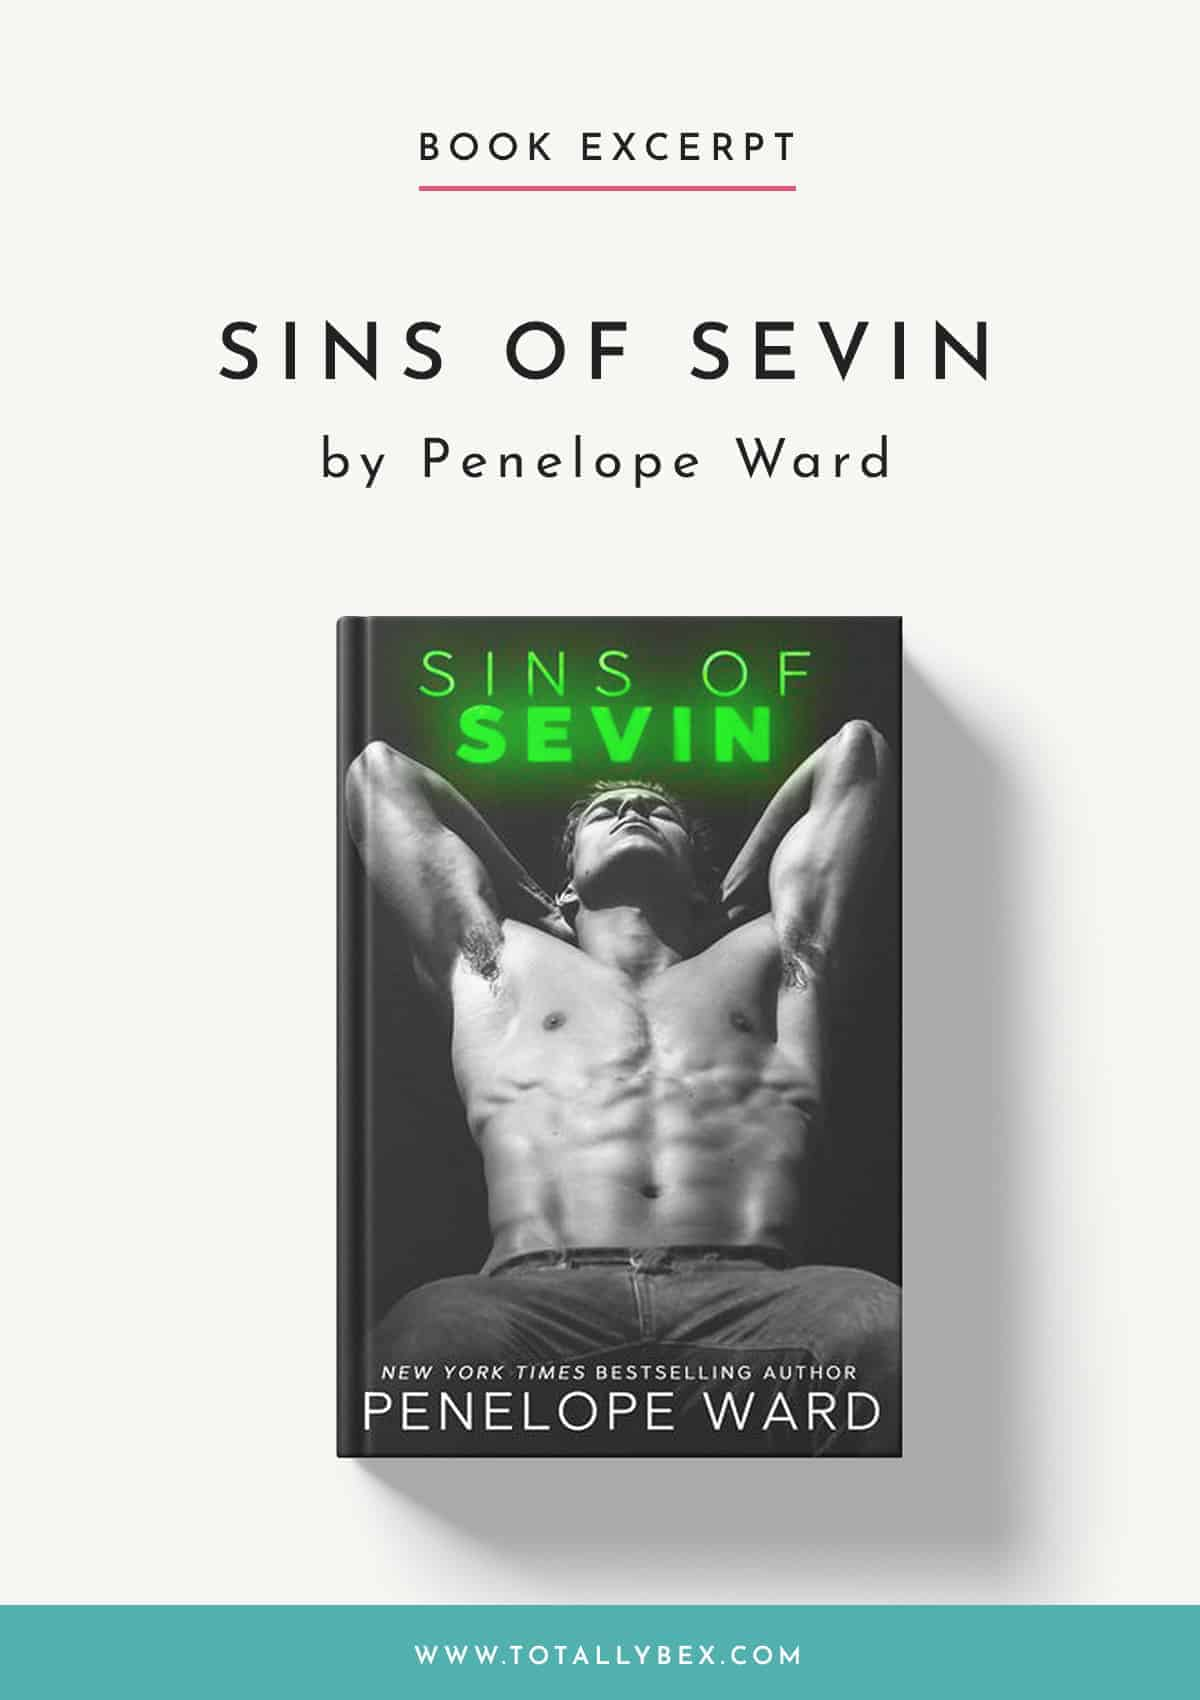 Sins of Sevin by Penelope Ward-Book Excerpt